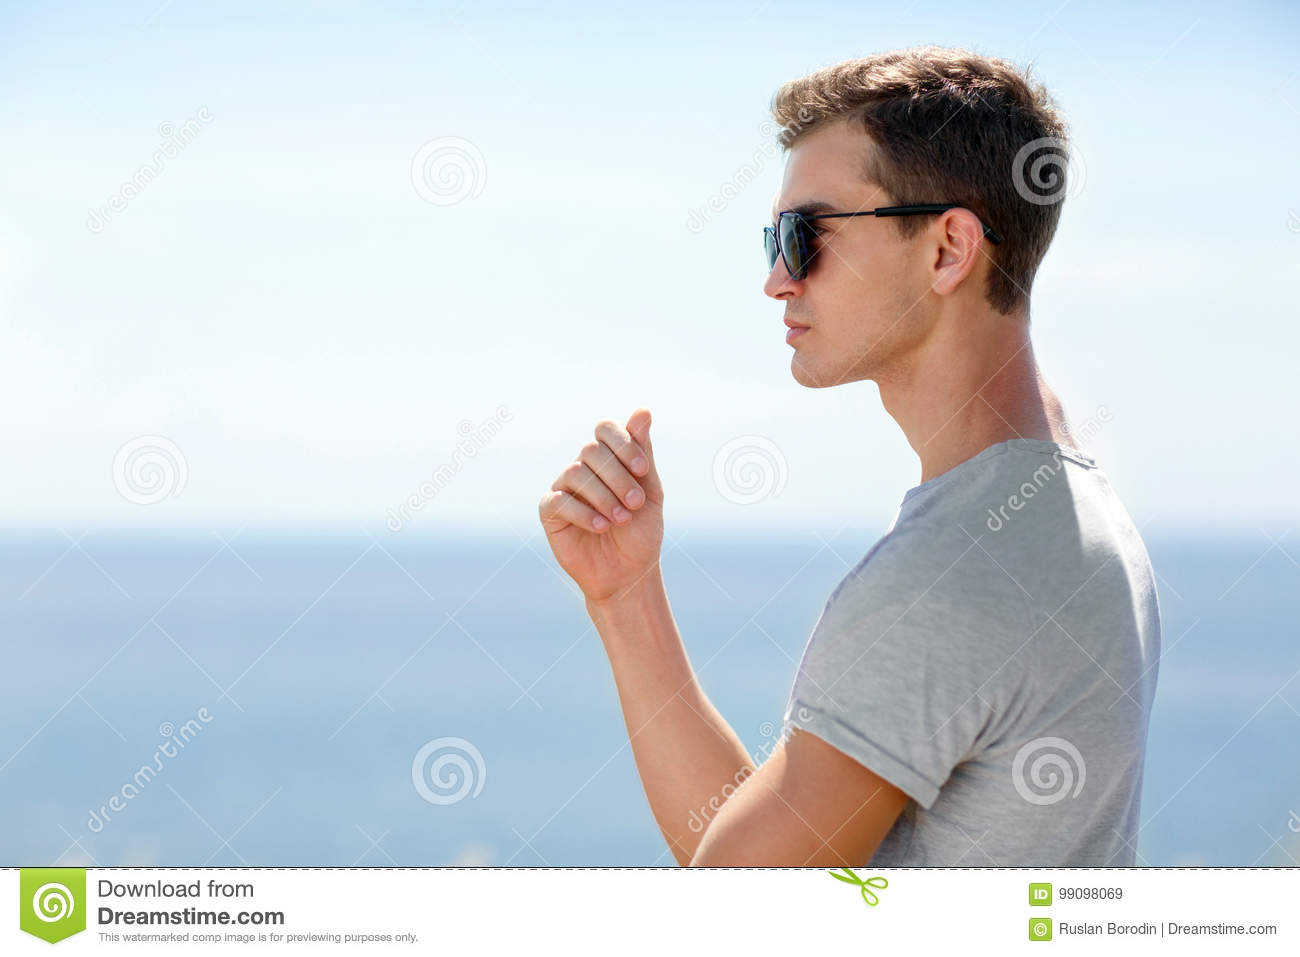 A portrait of a serious young man in sunglasses standing on a blurred sea background. A meditative guy. Copy space.